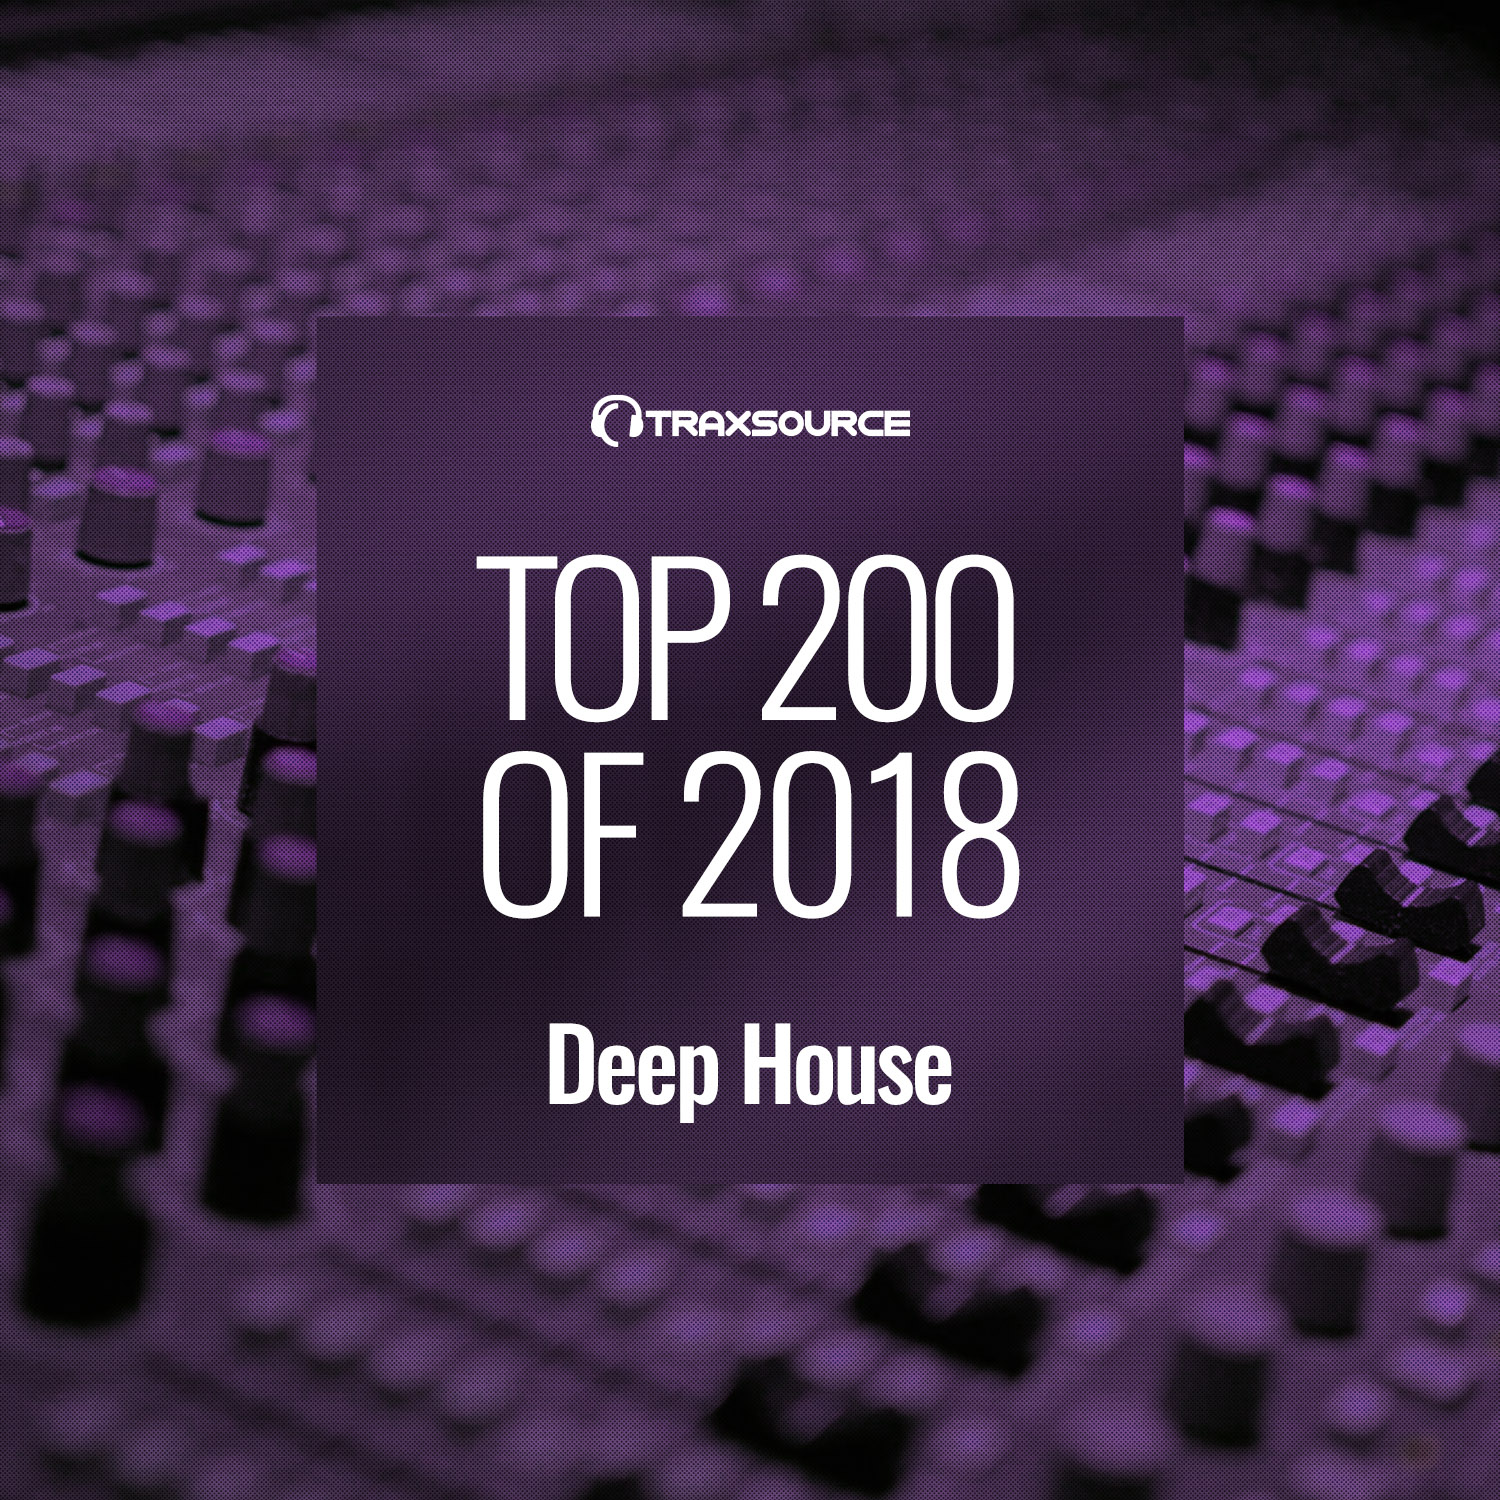 Code Promo Kare Design Traxsource Top 200 Deep House Of 2018 On Traxsource